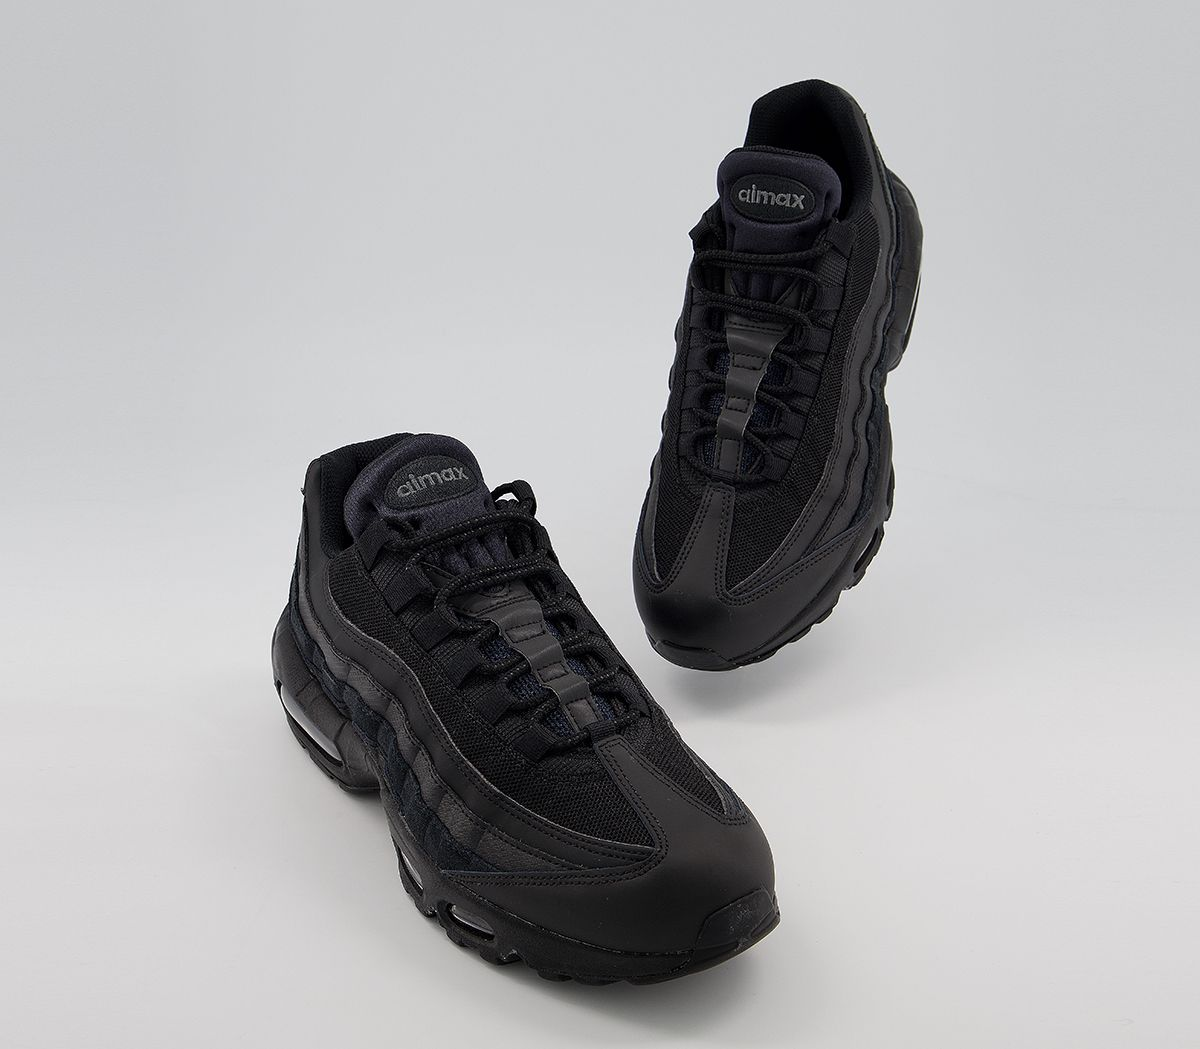 online store ec748 f9a41 Nike Air Max 95 Black Black Anthracite - His trainers